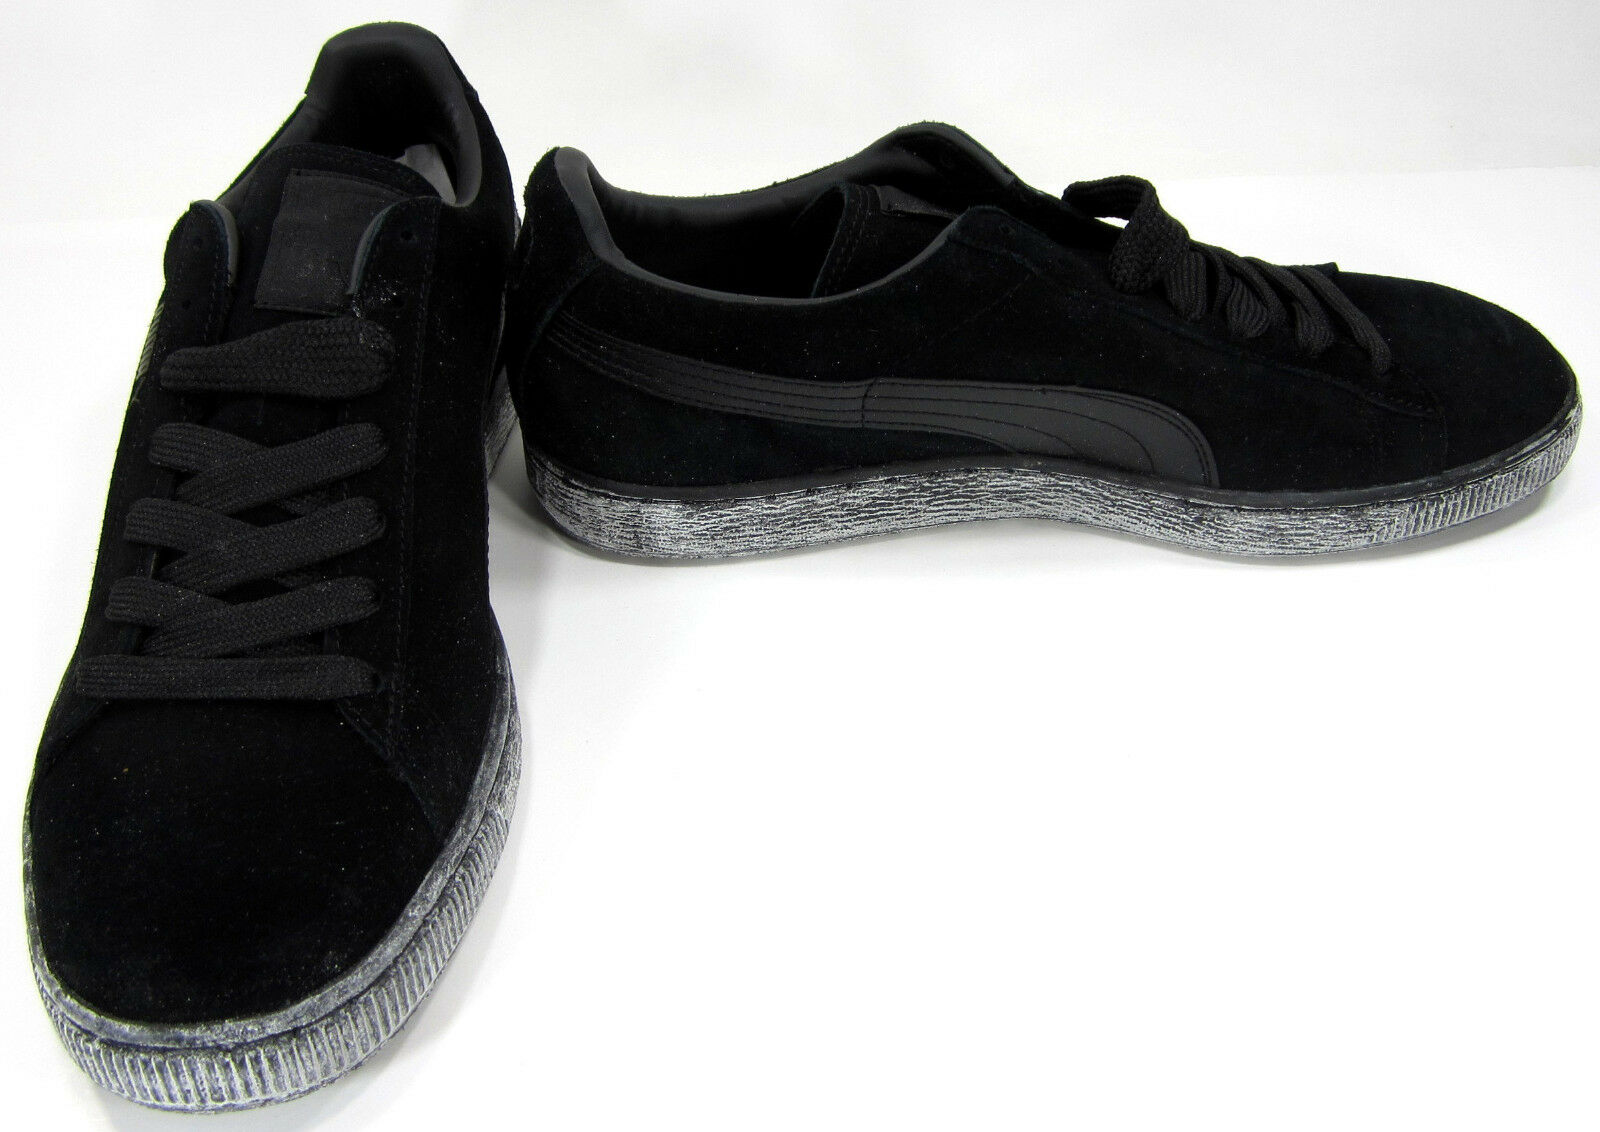 Puma shoes Suede Classic + Powder Coated Black Charcoal Sneakers Size 10